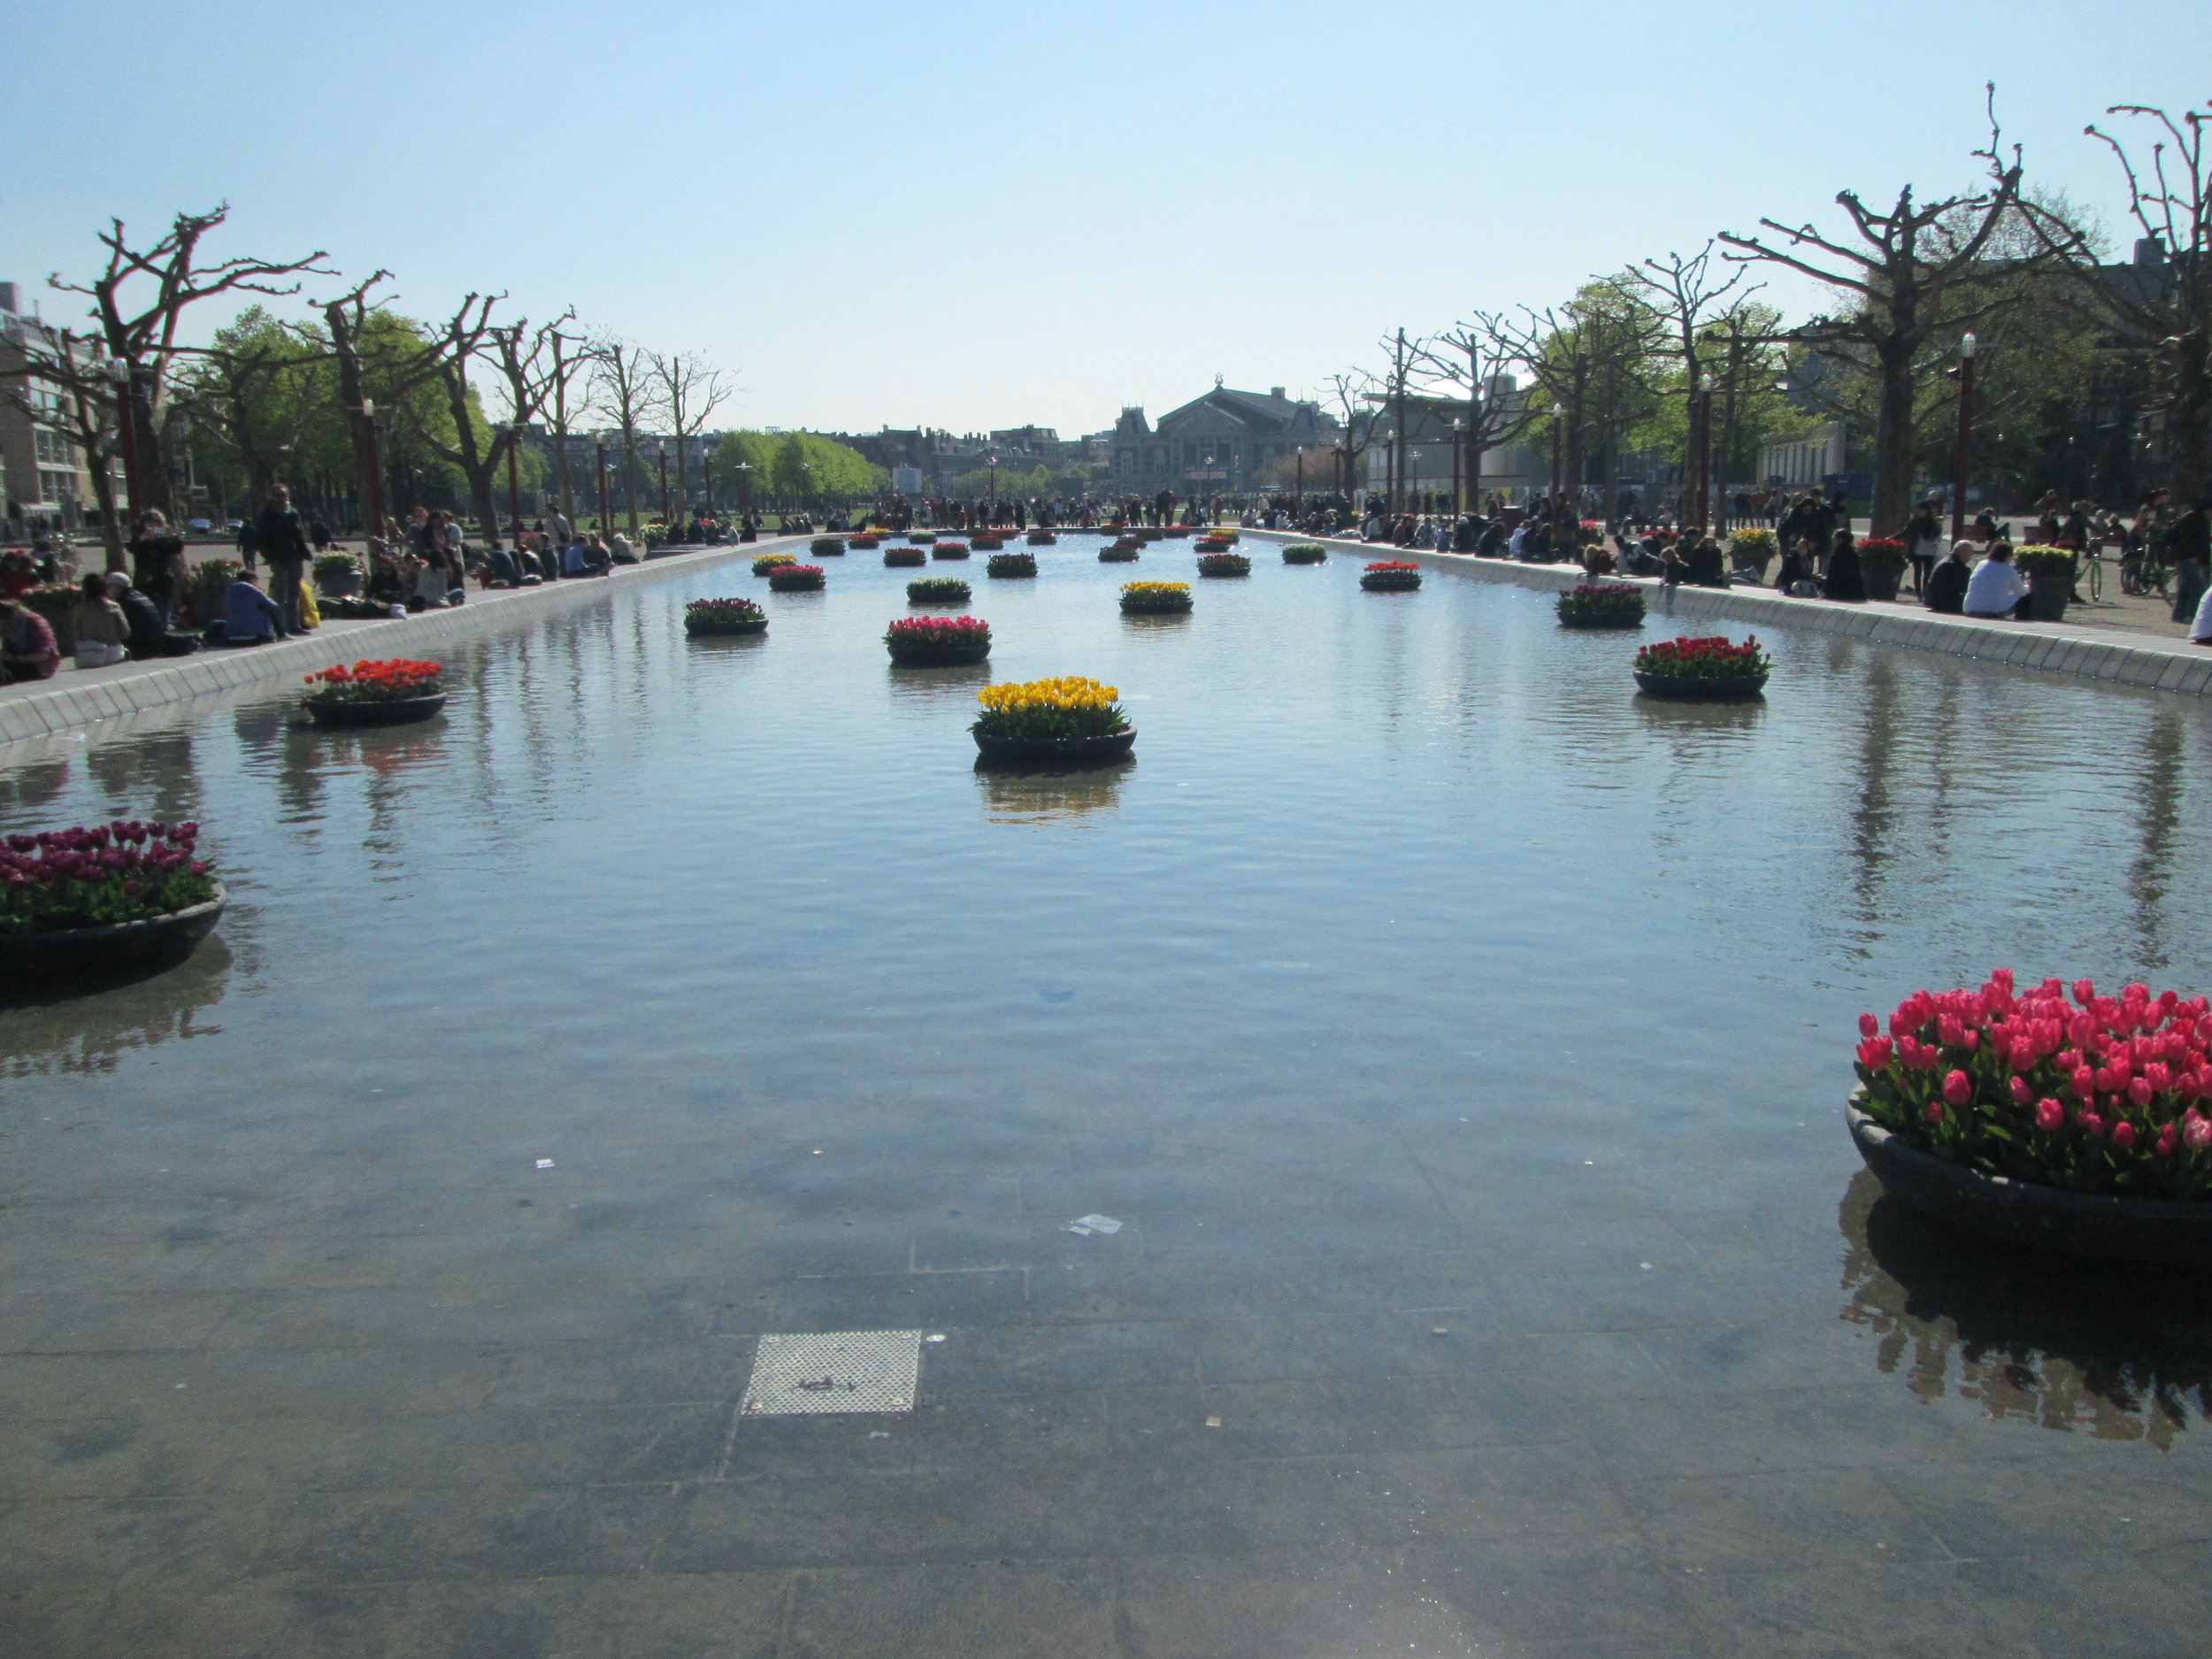 Rijksmuseum pond in the springtime! Filled with water and tulip planters.